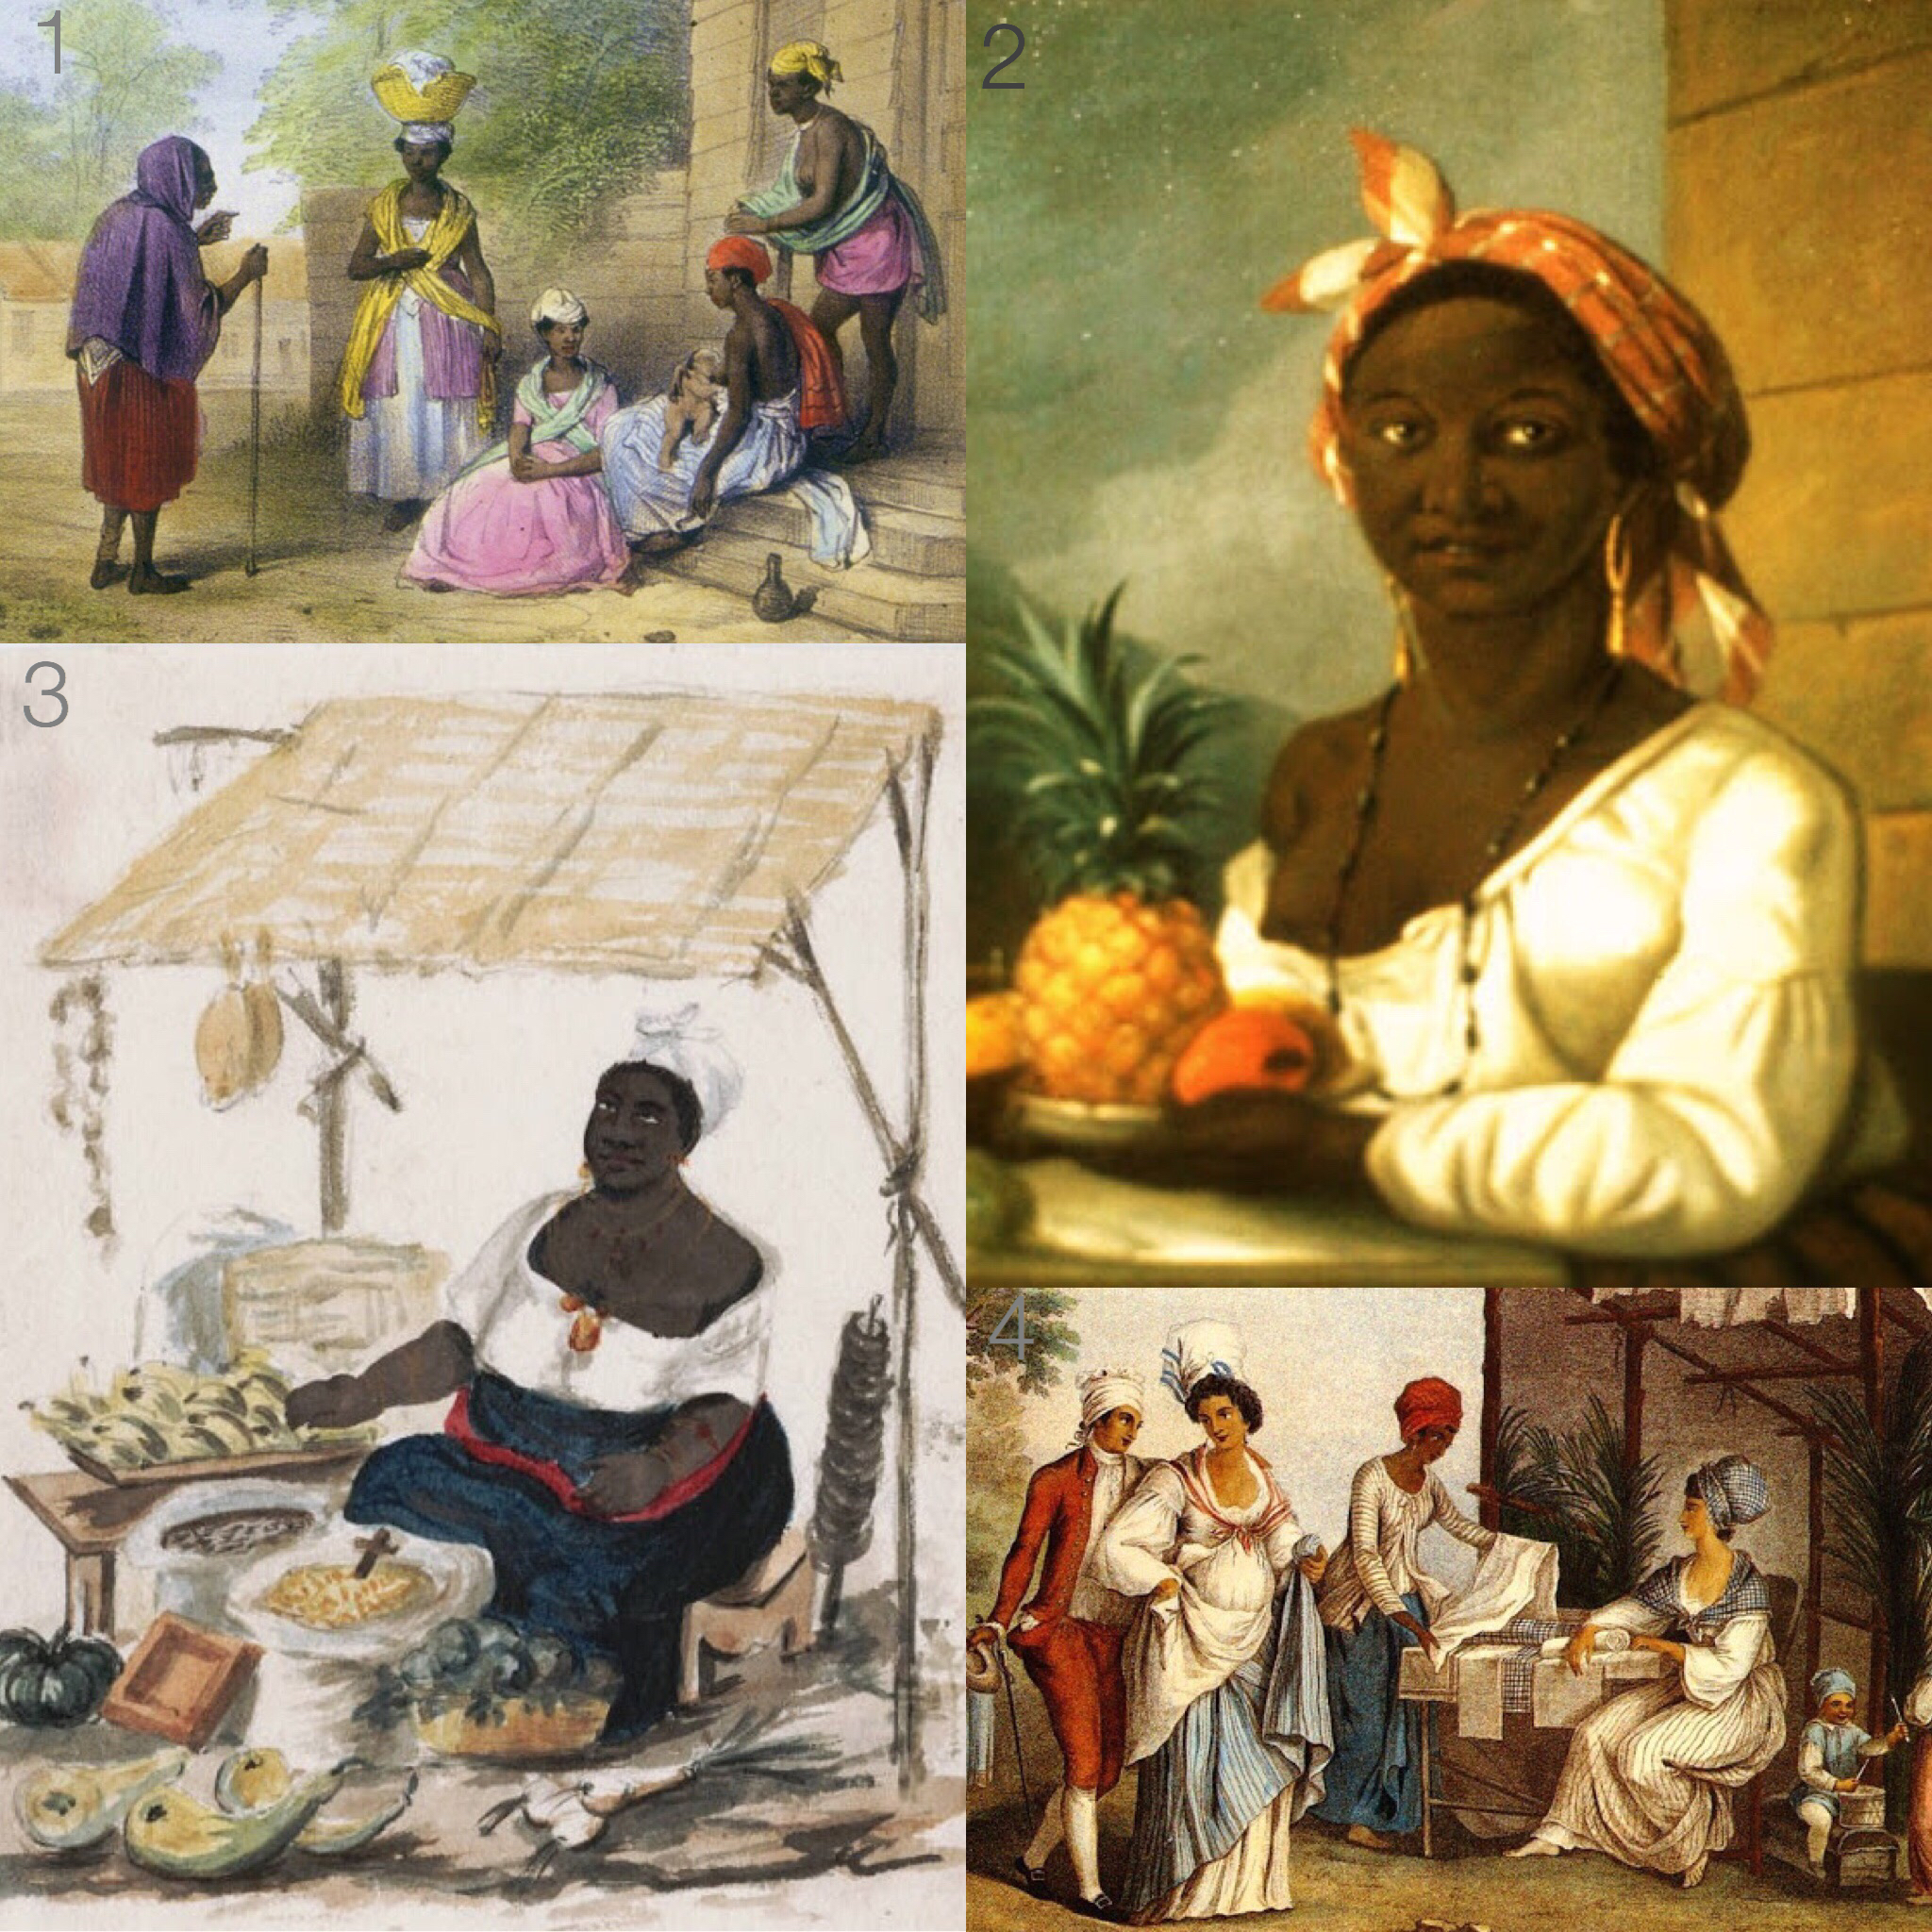 1. 19th Century Tignon Wearing Women of Color 2. 1786 Francois Beaucourt, Portrait of Servant Woman 3. Woman in Tignon Selling Fruits & Vegetables 4. Women of Santo Domingo in Tignons